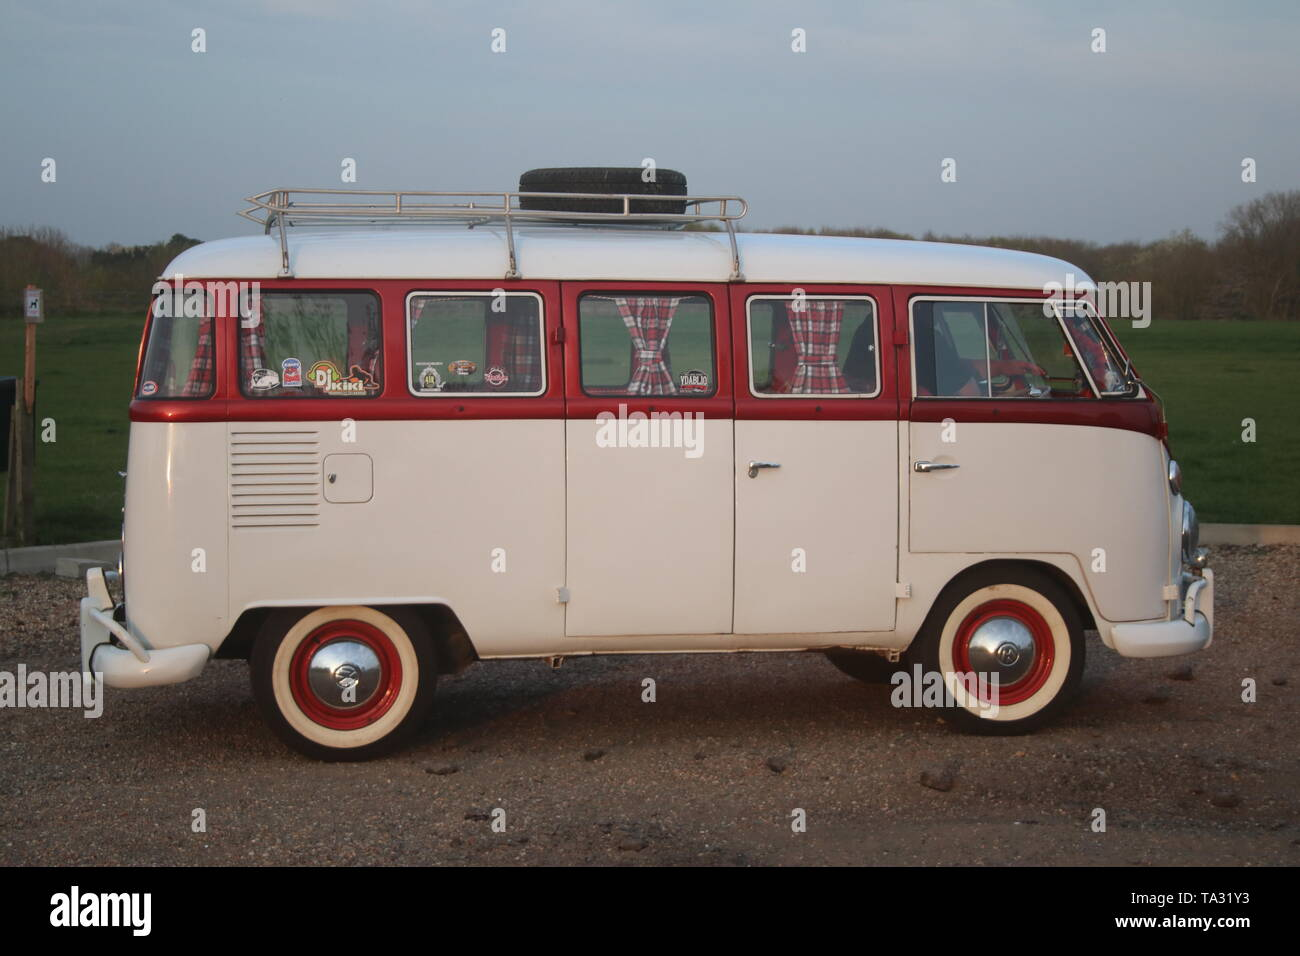 A DUSK SIDE VIEW PHOTO OF A RETRO CLASSIC SPLIT-SCREEN VW VOLKSWAGEN CAMPER BUS VAN - Stock Image